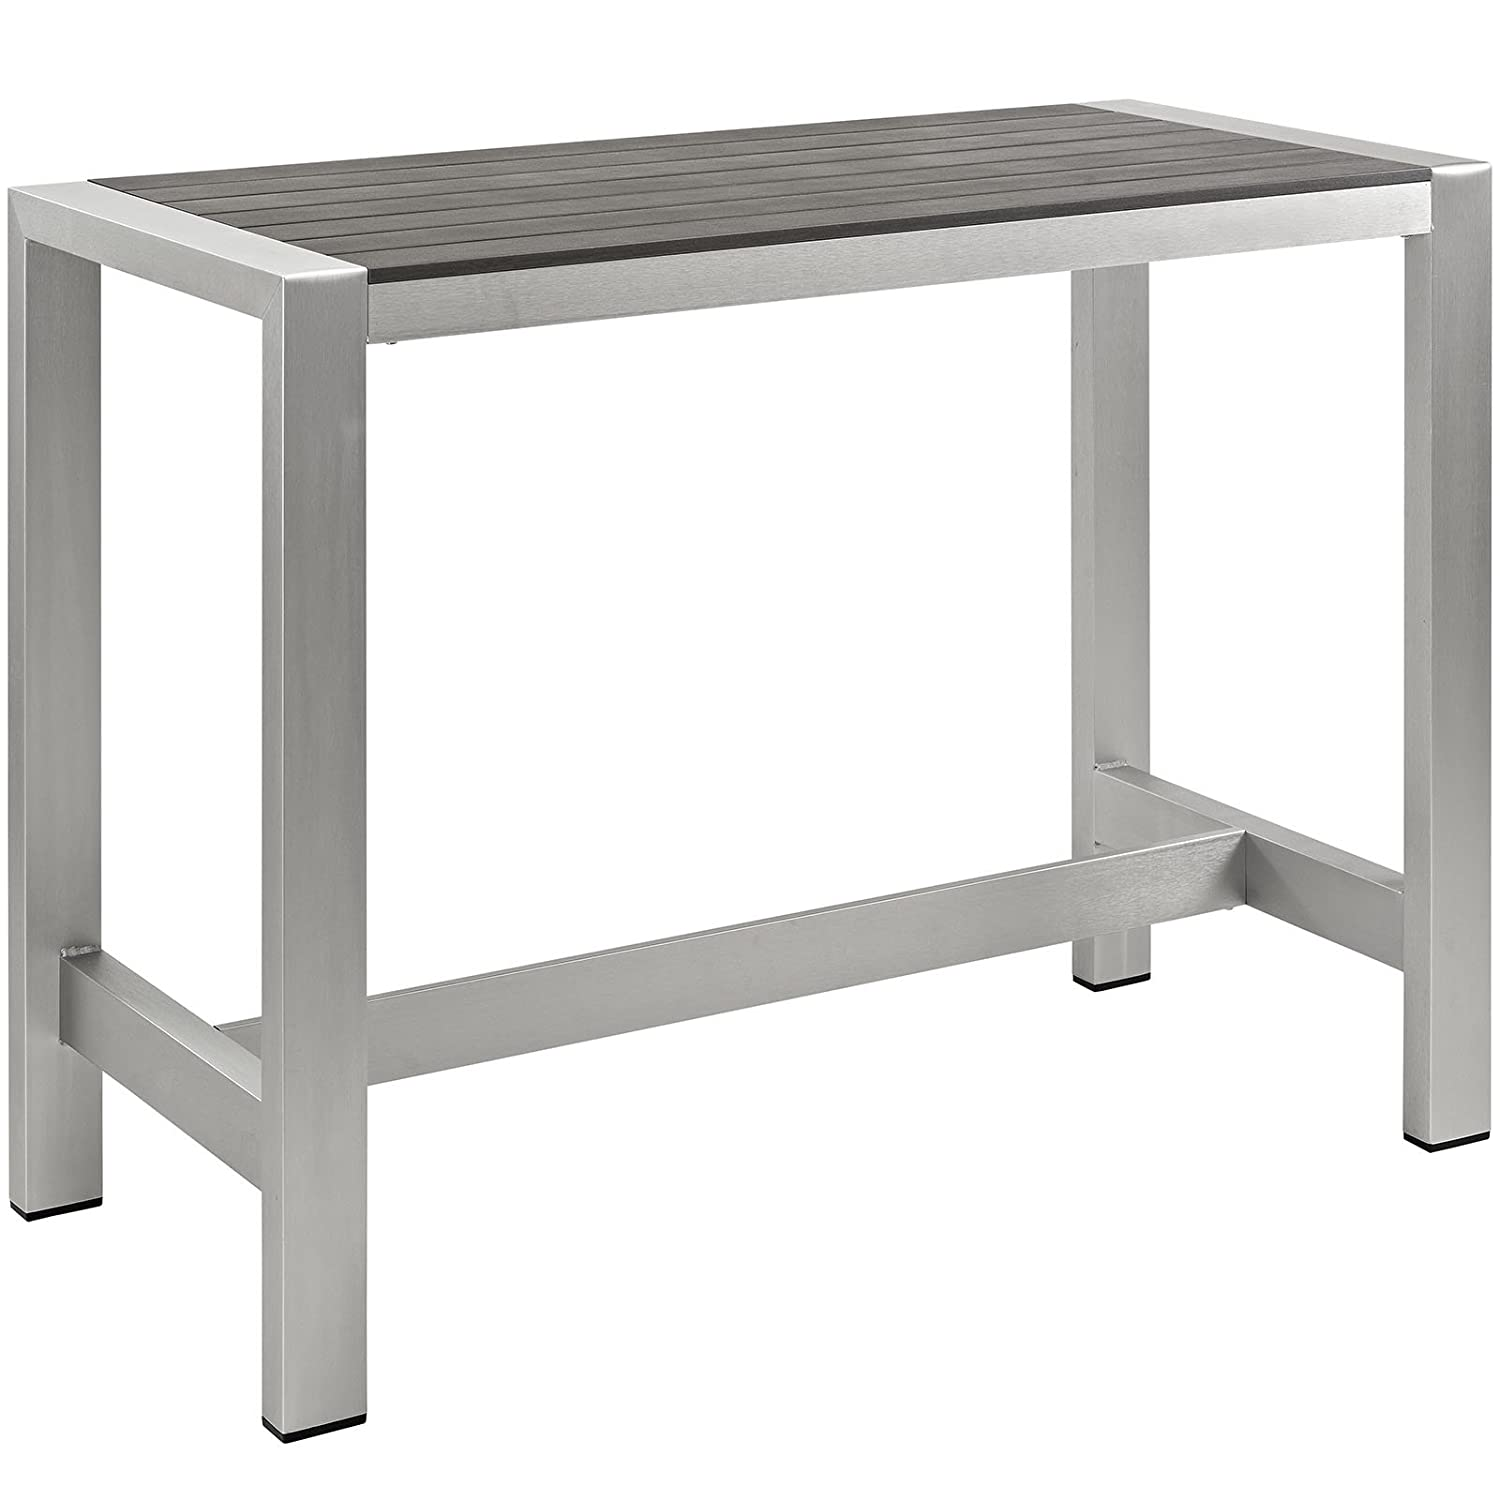 Amazon Com Modway Shore Aluminum Outdoor Patio Bar Table In Silver